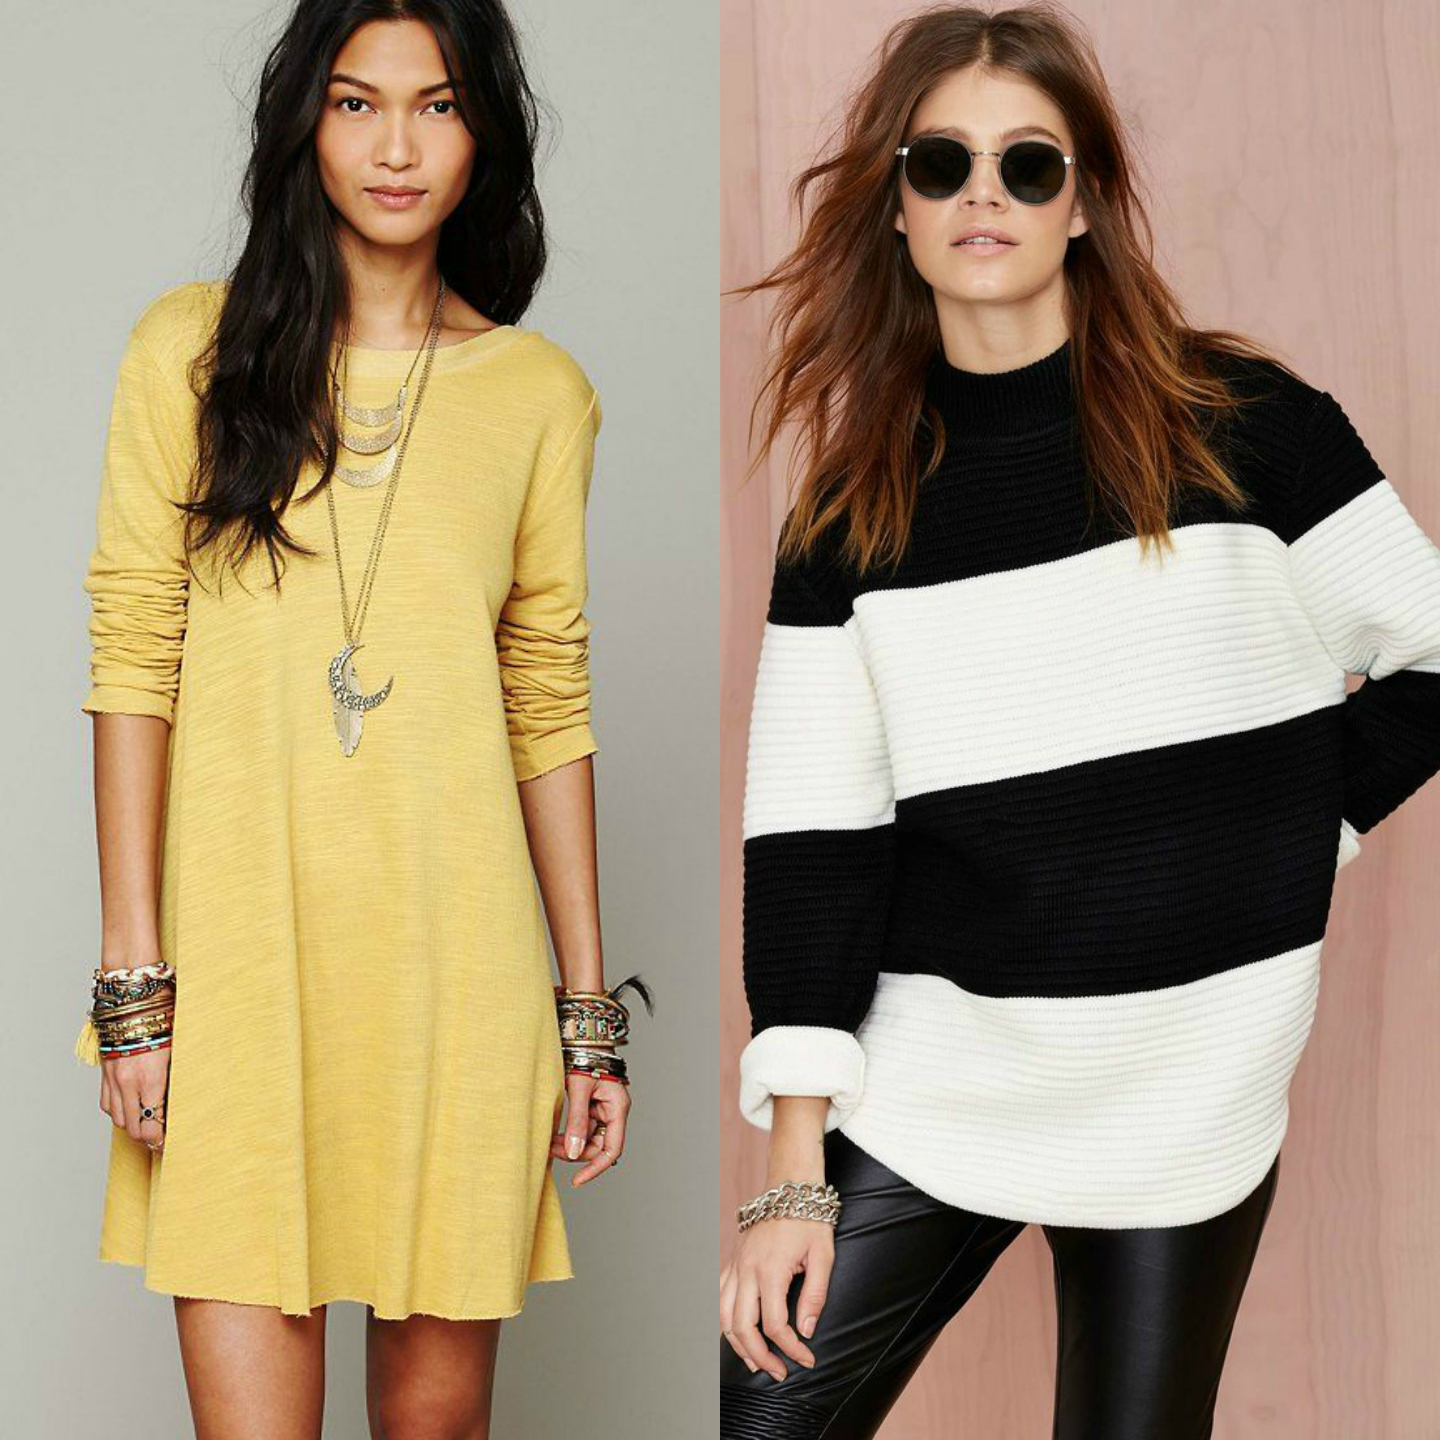 sweater dress pair five.jpg